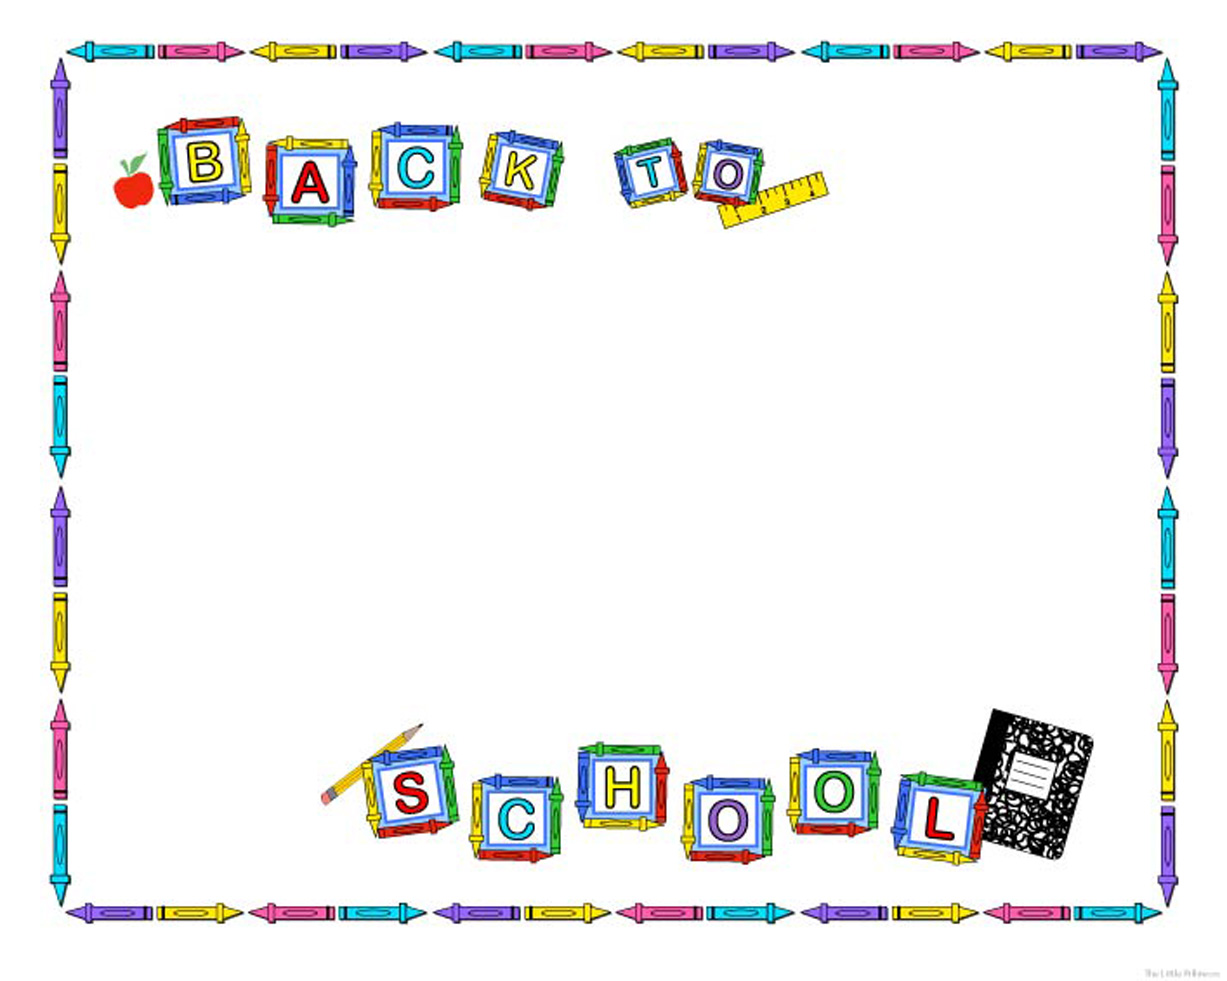 School clipart printables clipart library stock School clipart printables - ClipartFest clipart library stock